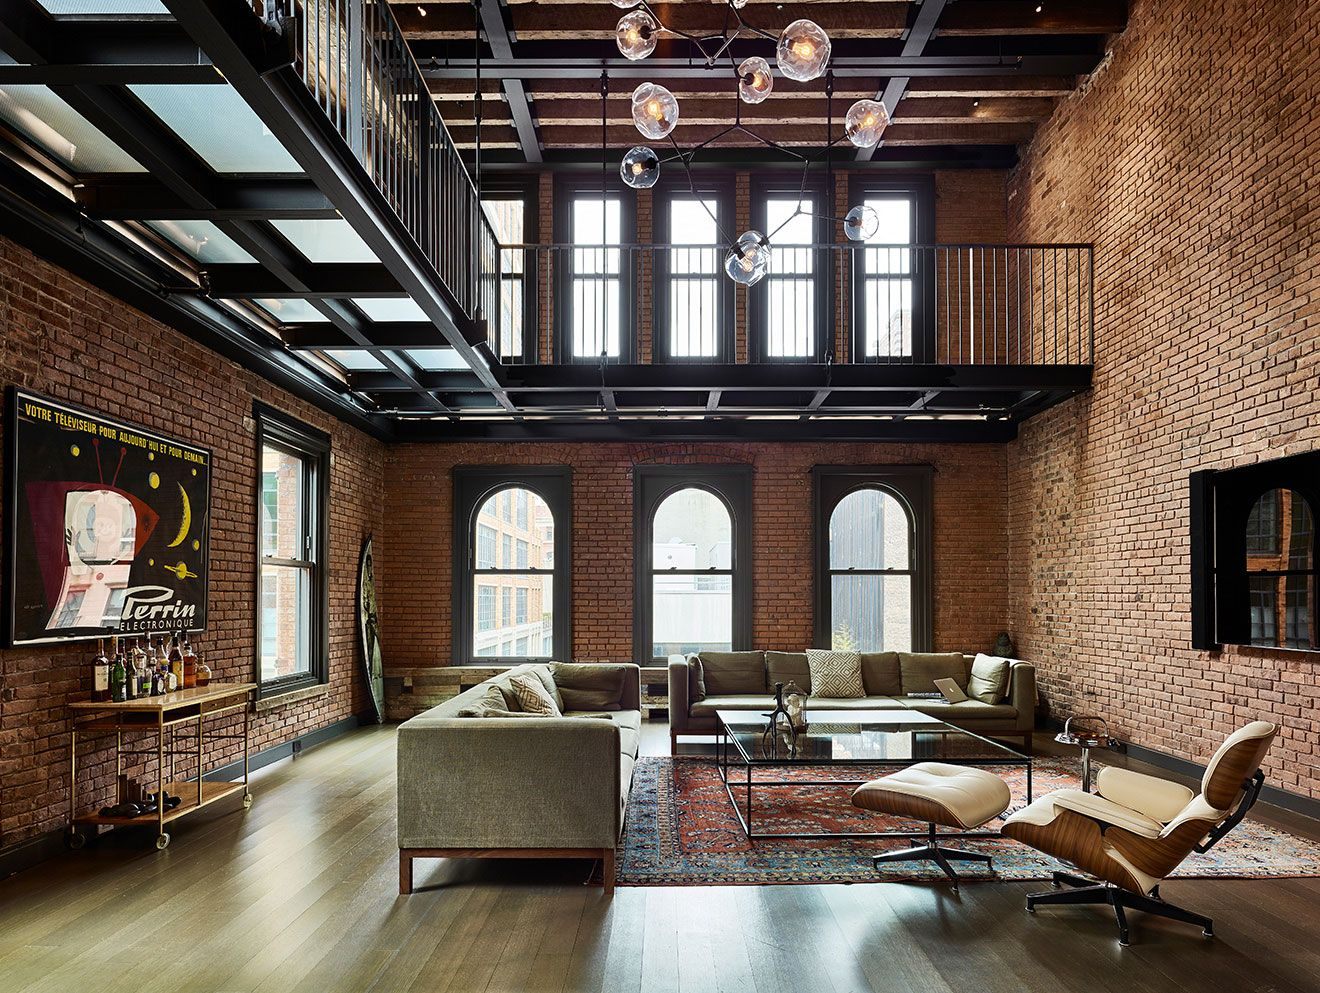 Room Living Area With Lots Of Exposed Brick Sits Beneath A Metal Catwalk In This Loft In New York City 1320 9 Loft Interiors Loft Design Industrial House